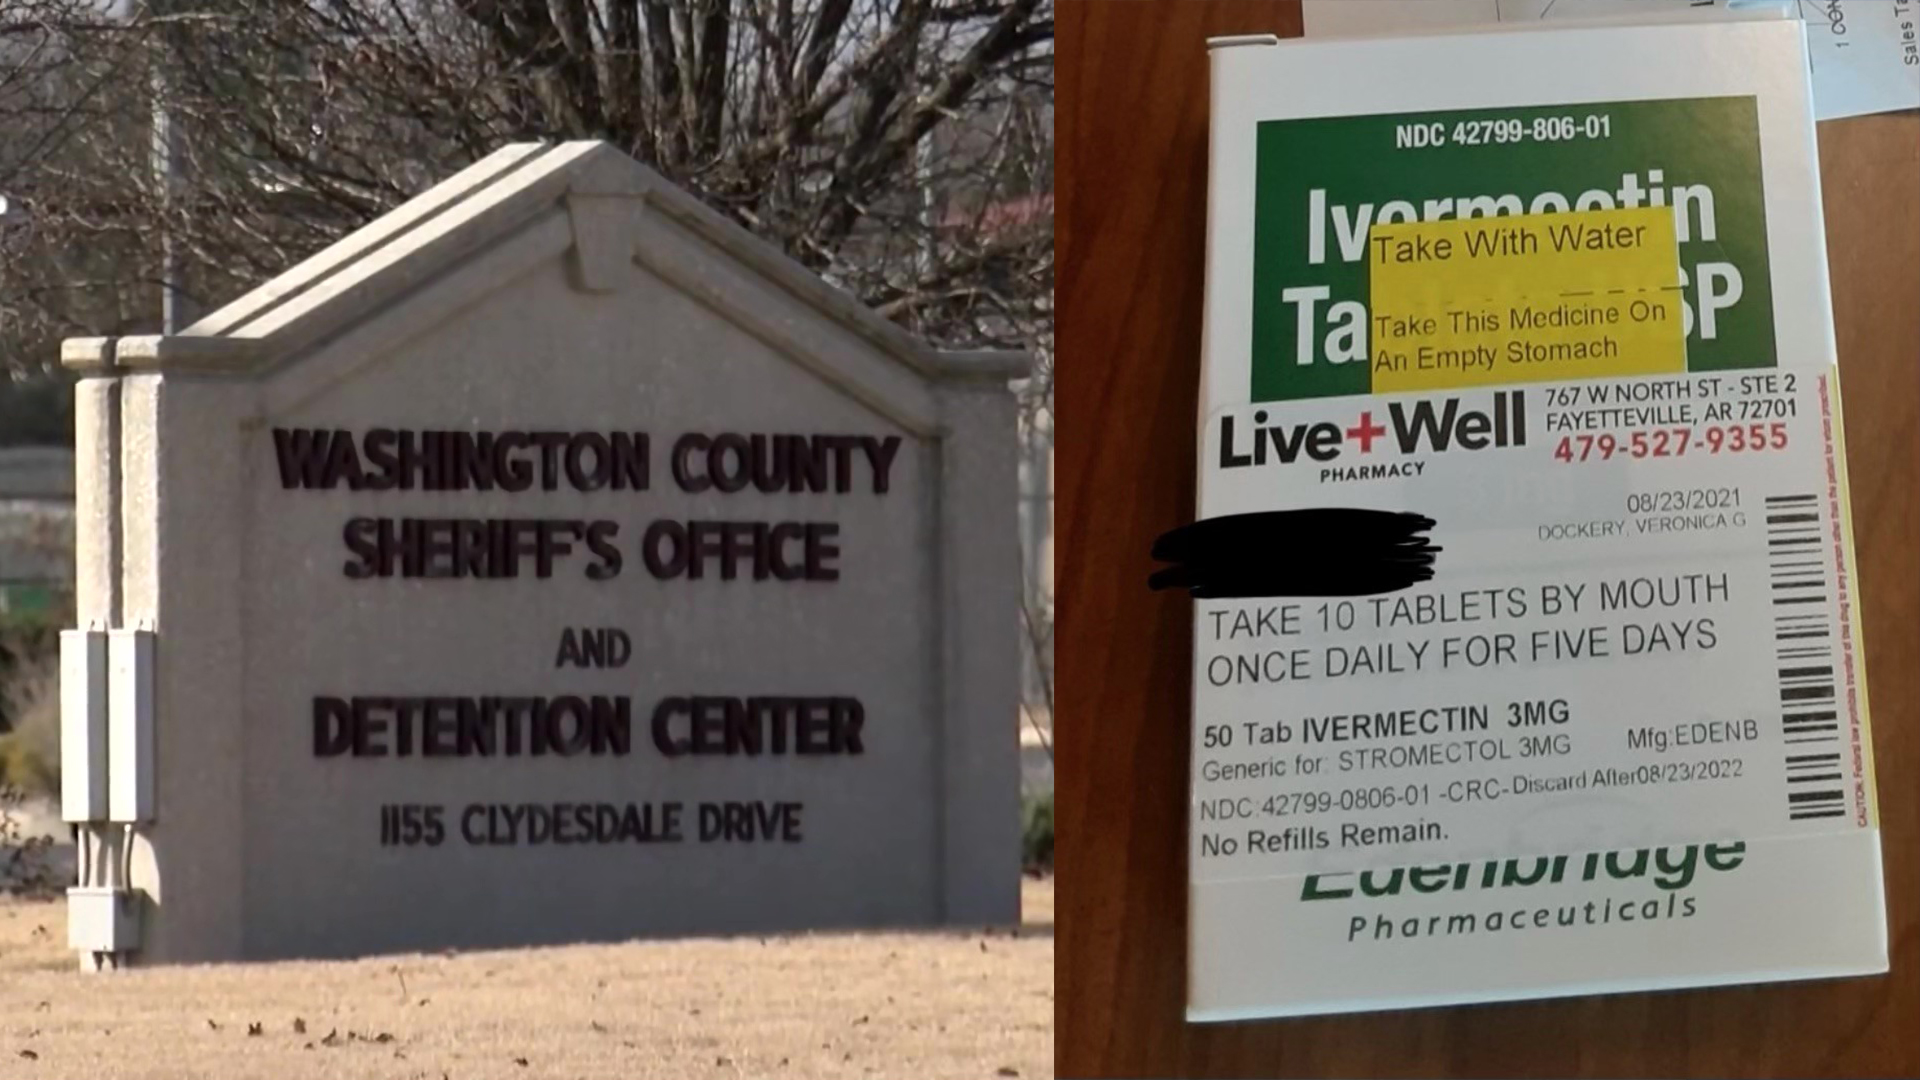 The Washington County Jail and an ivermectin prescription are seen in these images. (KNWA/Courtesy Photo)